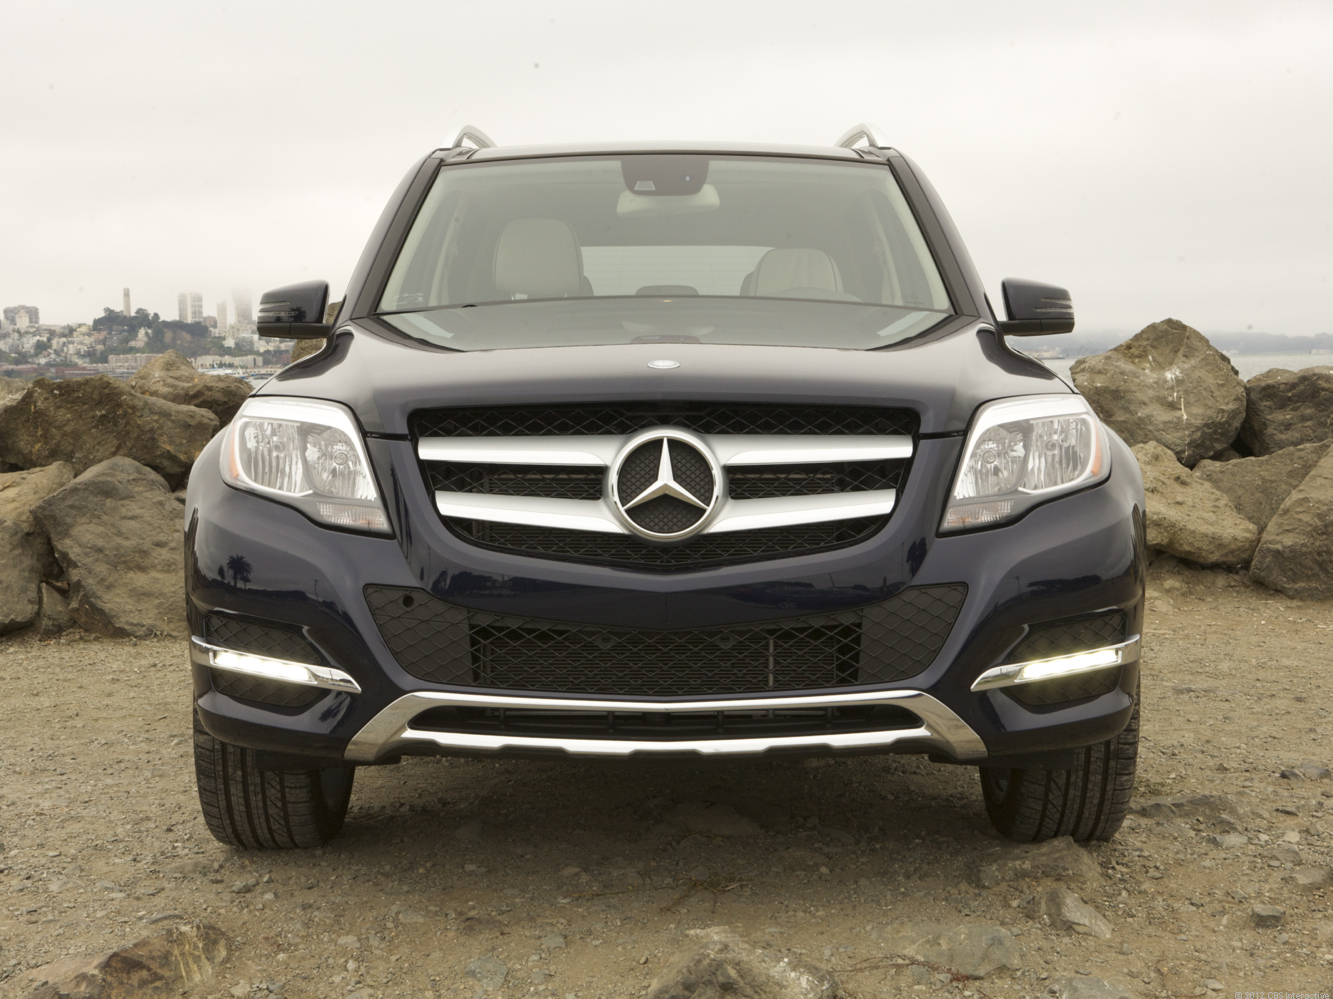 2013 mercedes benz glk 350 4matic review cnet for Mercedes benz glk 350 review